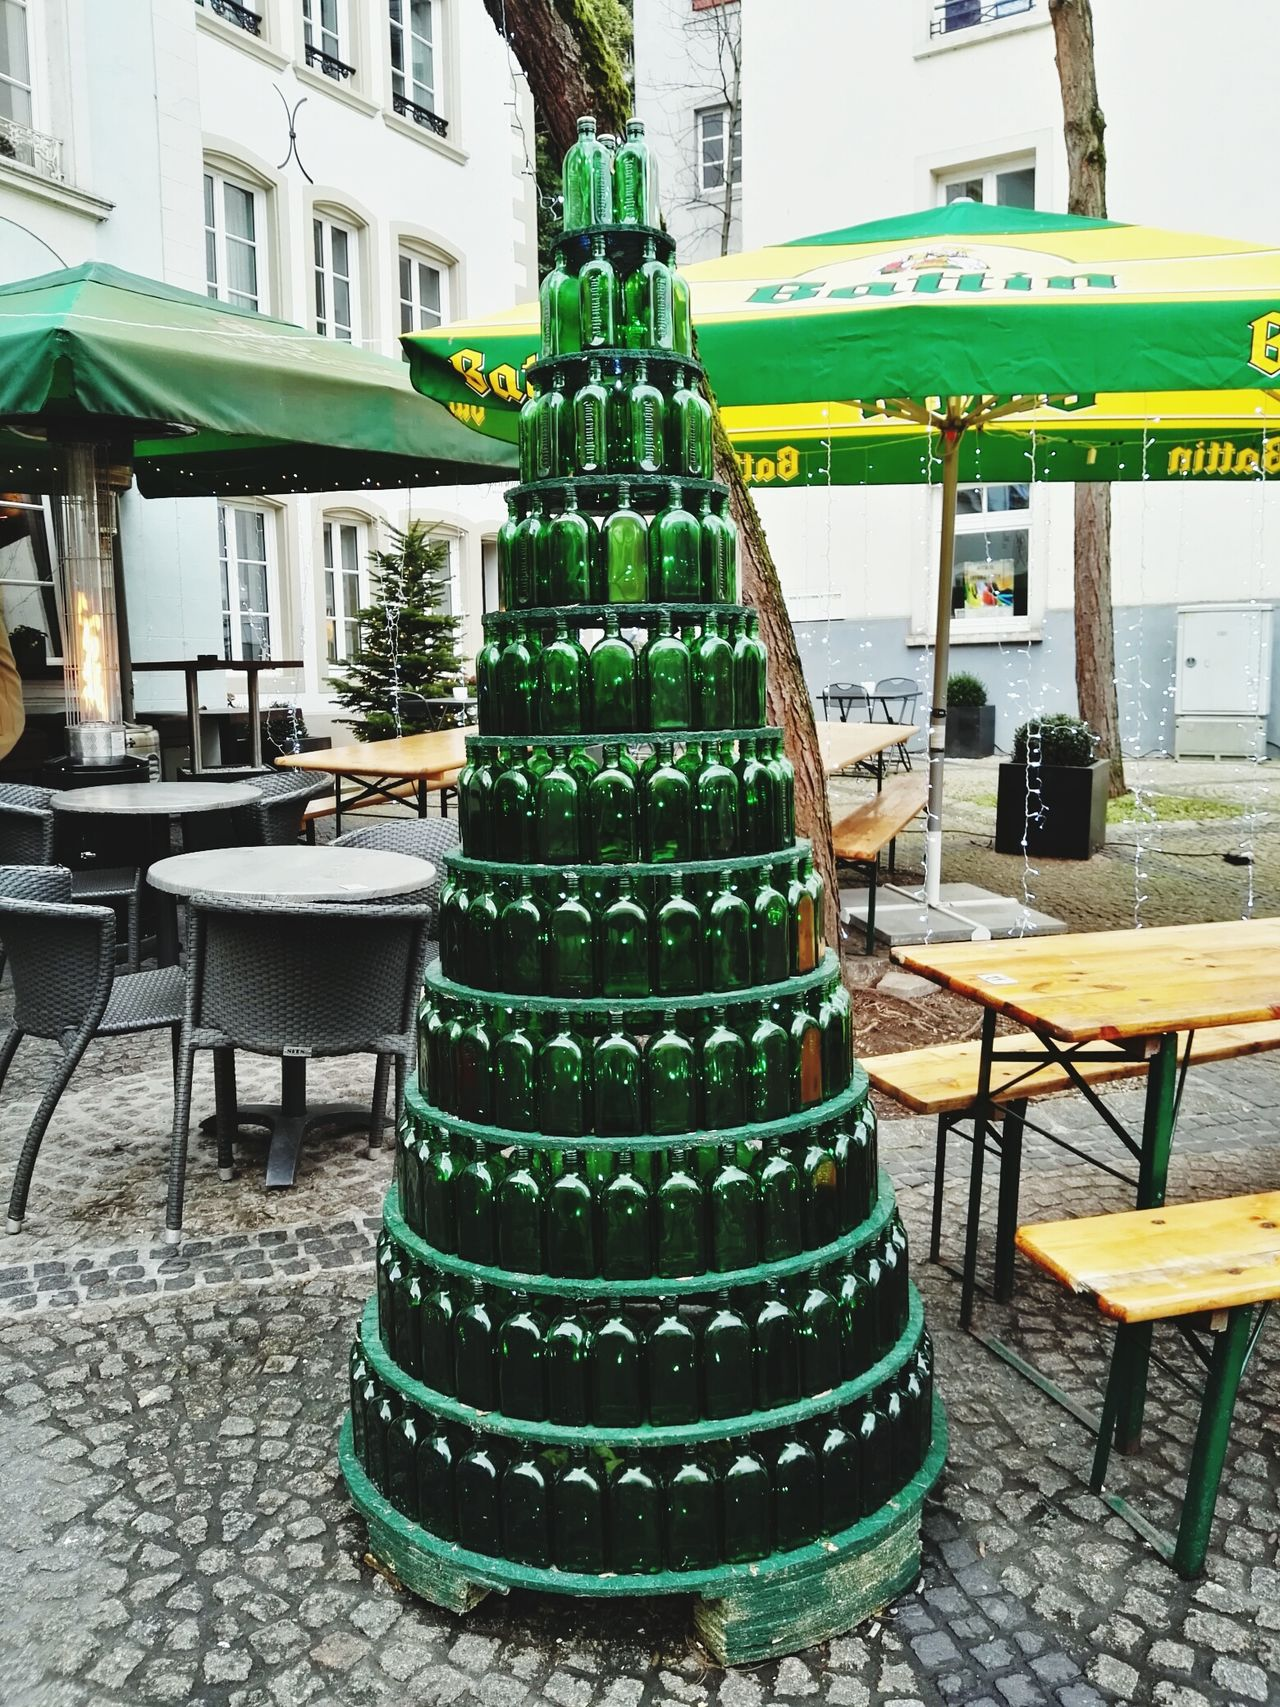 All I want for Christmas is... :-) Illuminated Christmas Tree Celebration Green Color Christmas Christmas Decoration No People Outdoors Bottles Collection Bottle Art Luxembourg Streetphotography Luxembourg_Collection Jägermeister Abstract Art Original Art Finding New Frontiers